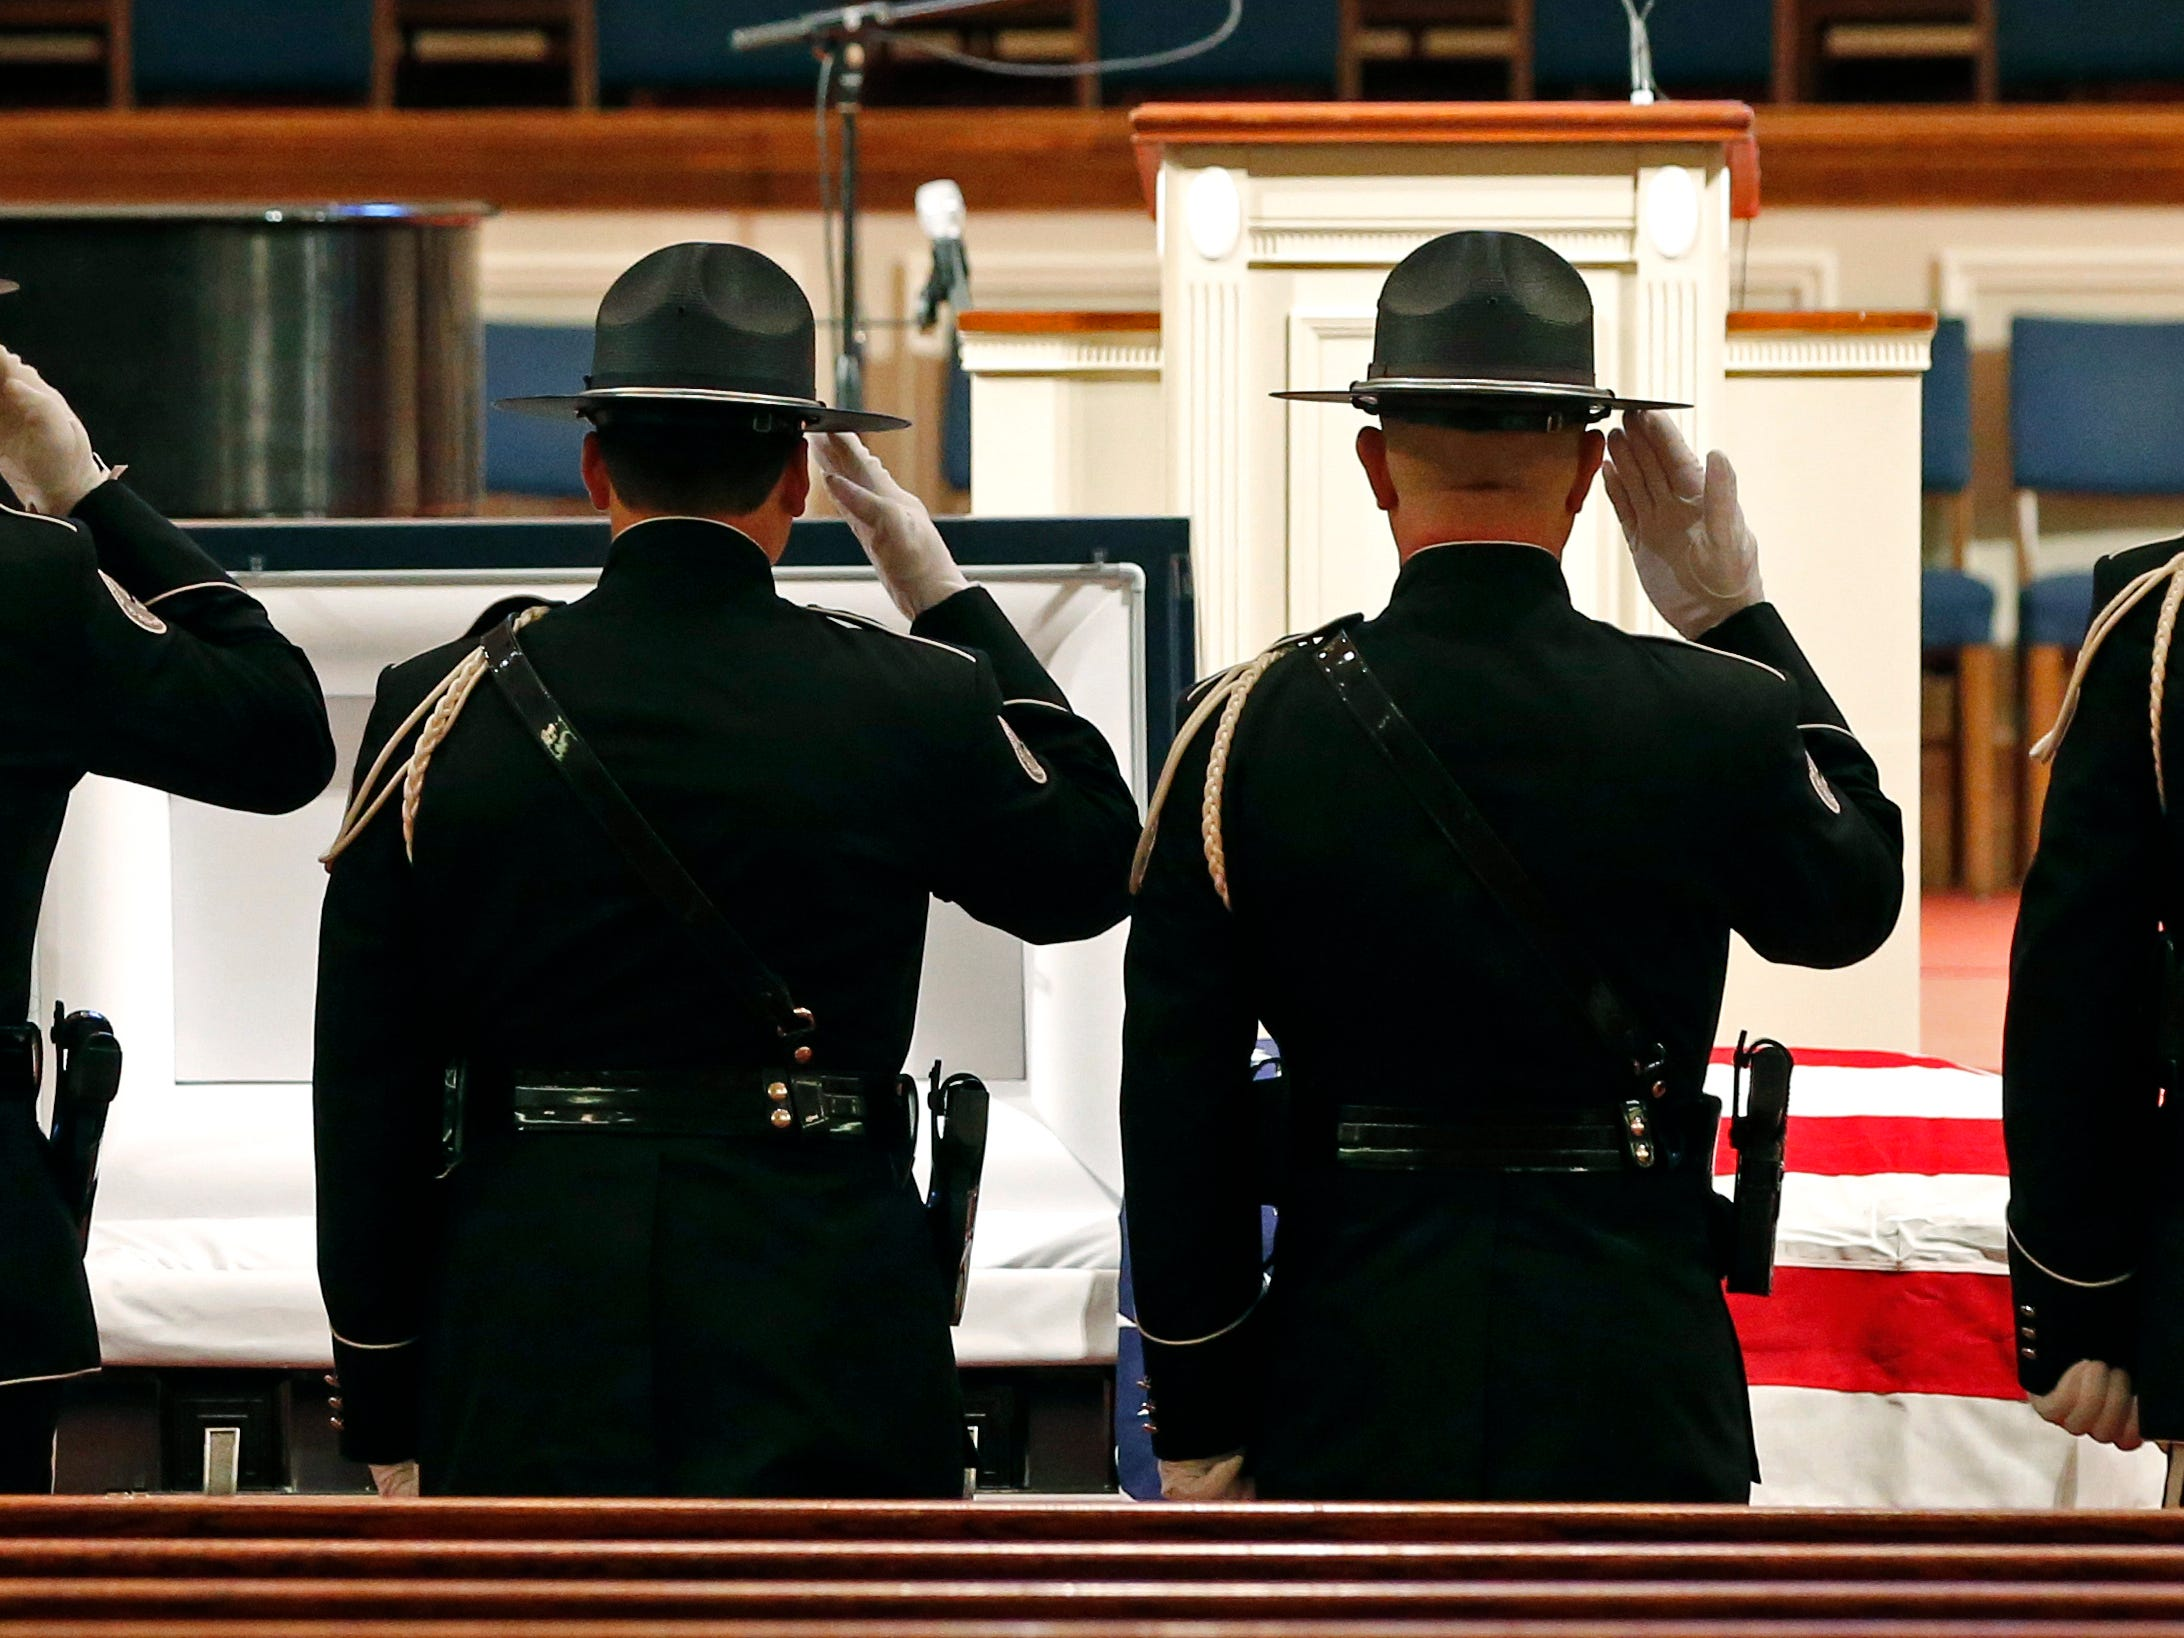 Members of the Biloxi Police Department Honor Guard salute the body of officer Robert McKeithen after escorting him into the First Baptist Church of Biloxi, Miss., Monday, May 13, 2019, prior to visitation. McKeithen was killed outside Biloxi's police station May 5.